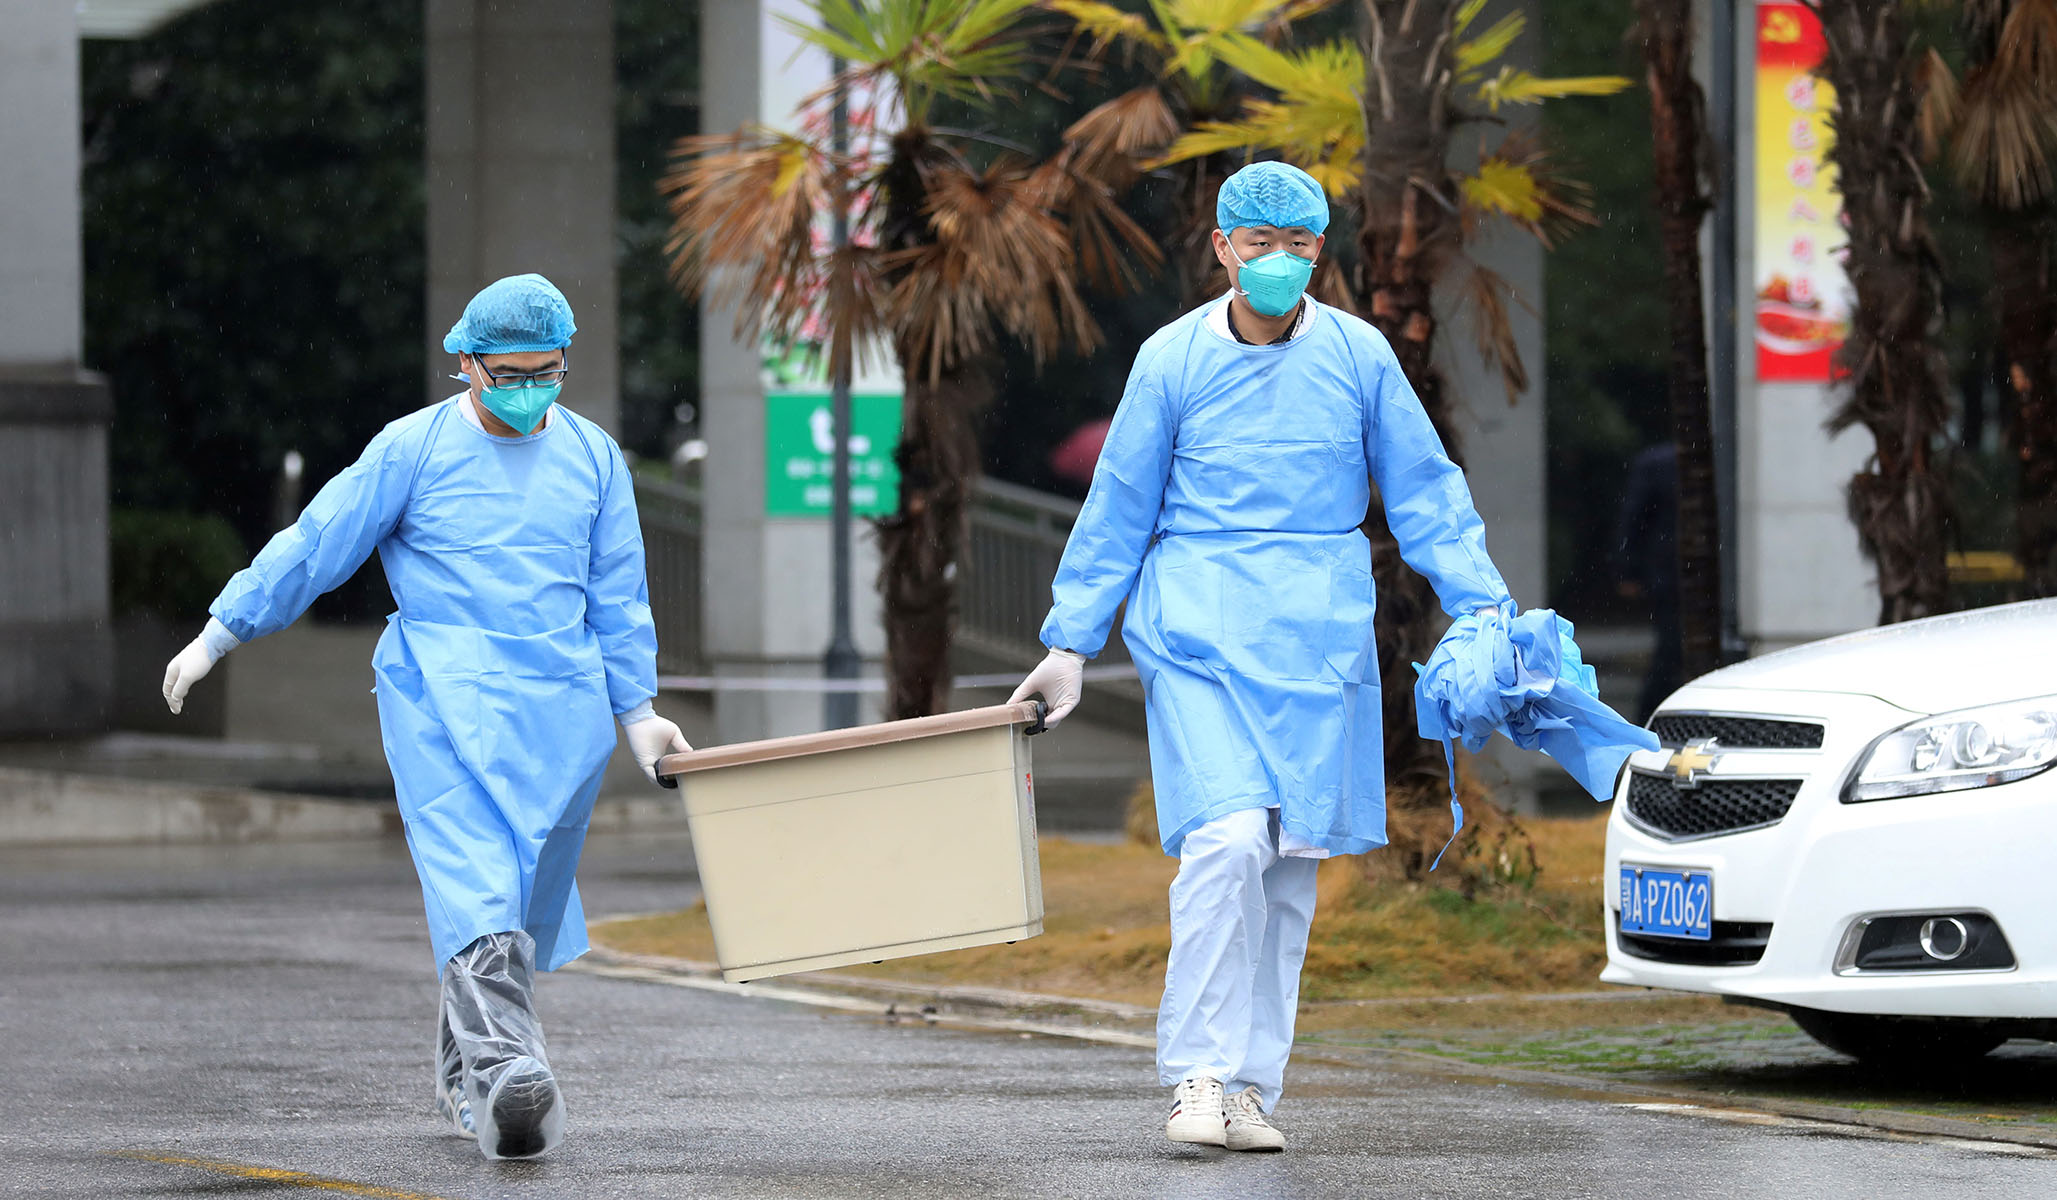 CDC Reports First Confirmed Case of Wuhan Virus in U.S.